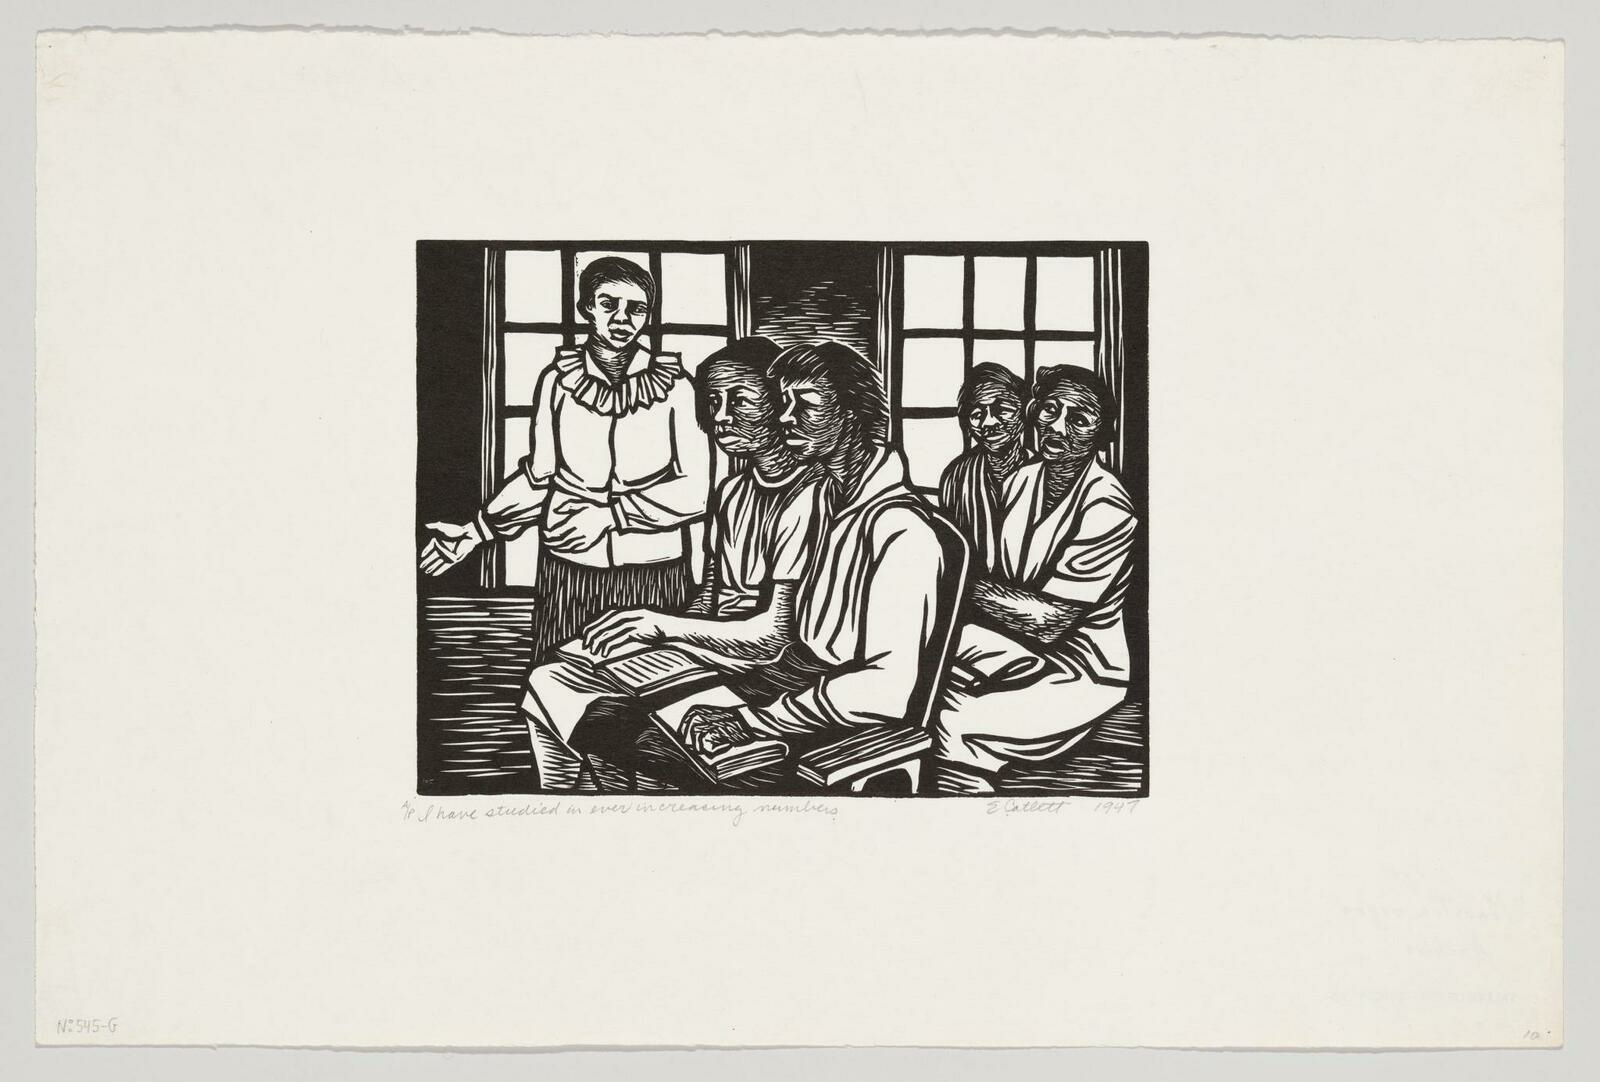 Four Black women sitting in a classroom with books on their laps while a standing woman lectures.